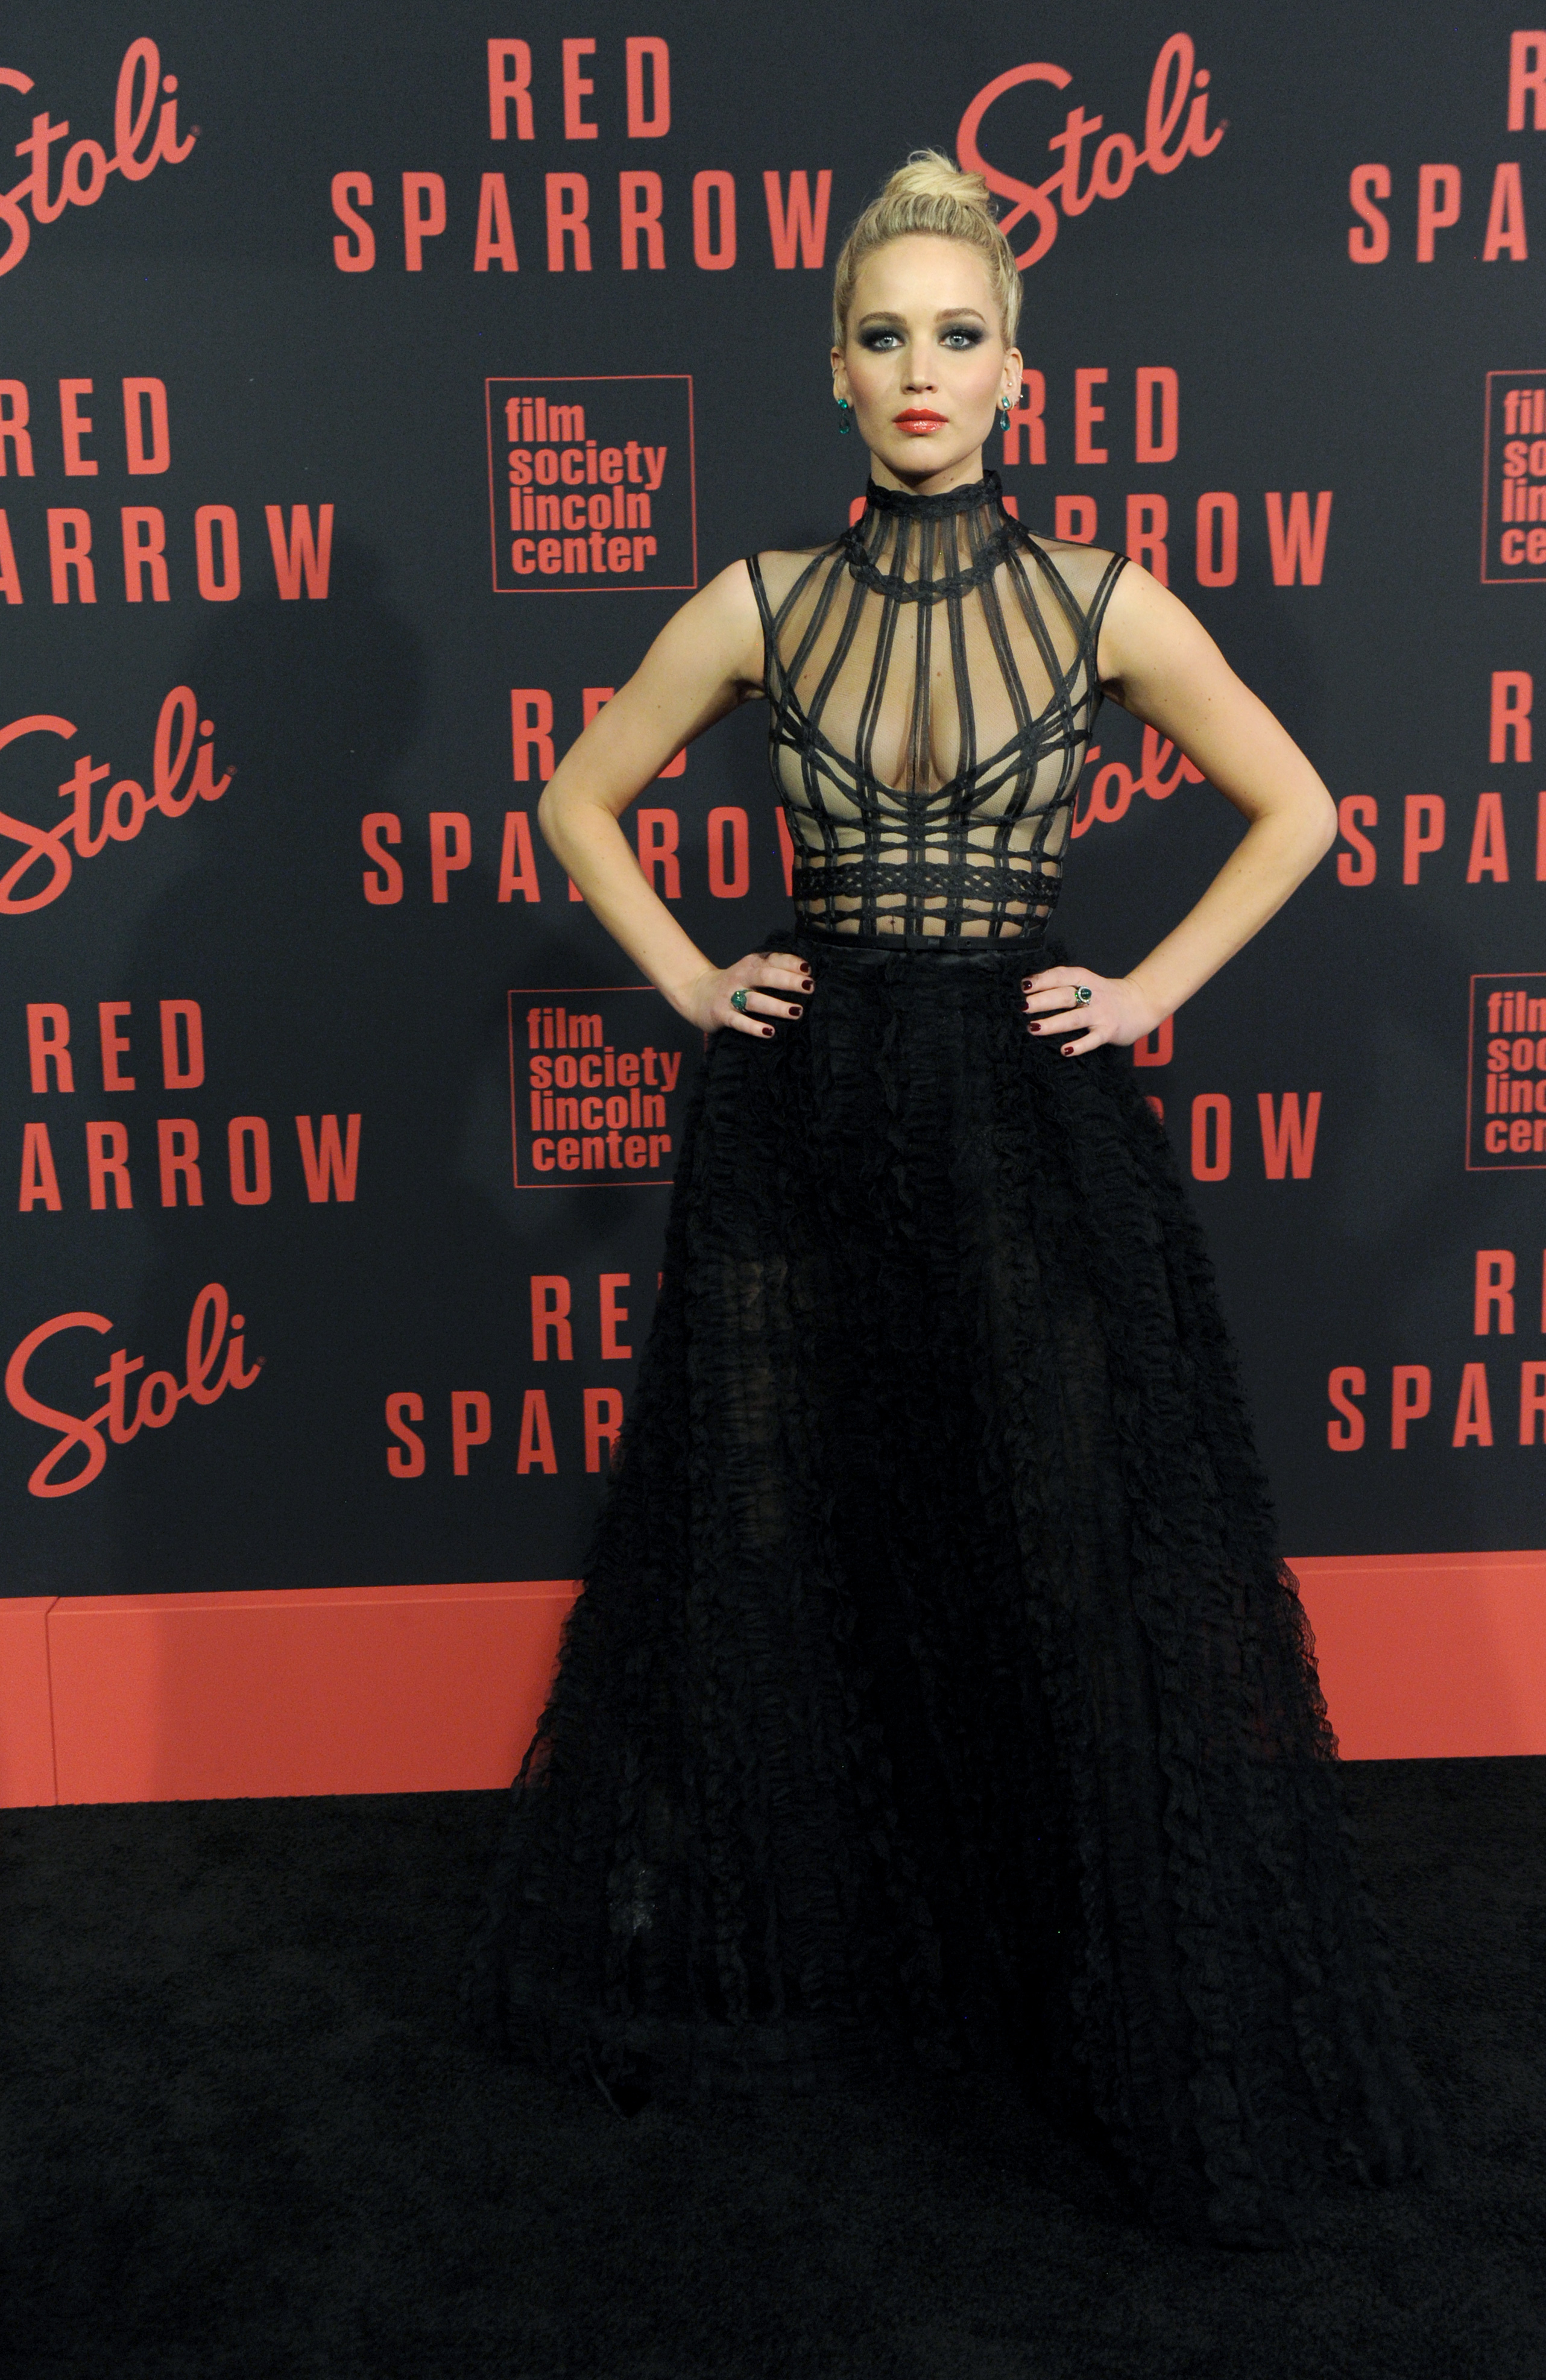 Stoli Recruited As The Official Vodka Partner Of 20th Century Fox Film S Red Sparrow Business Wire